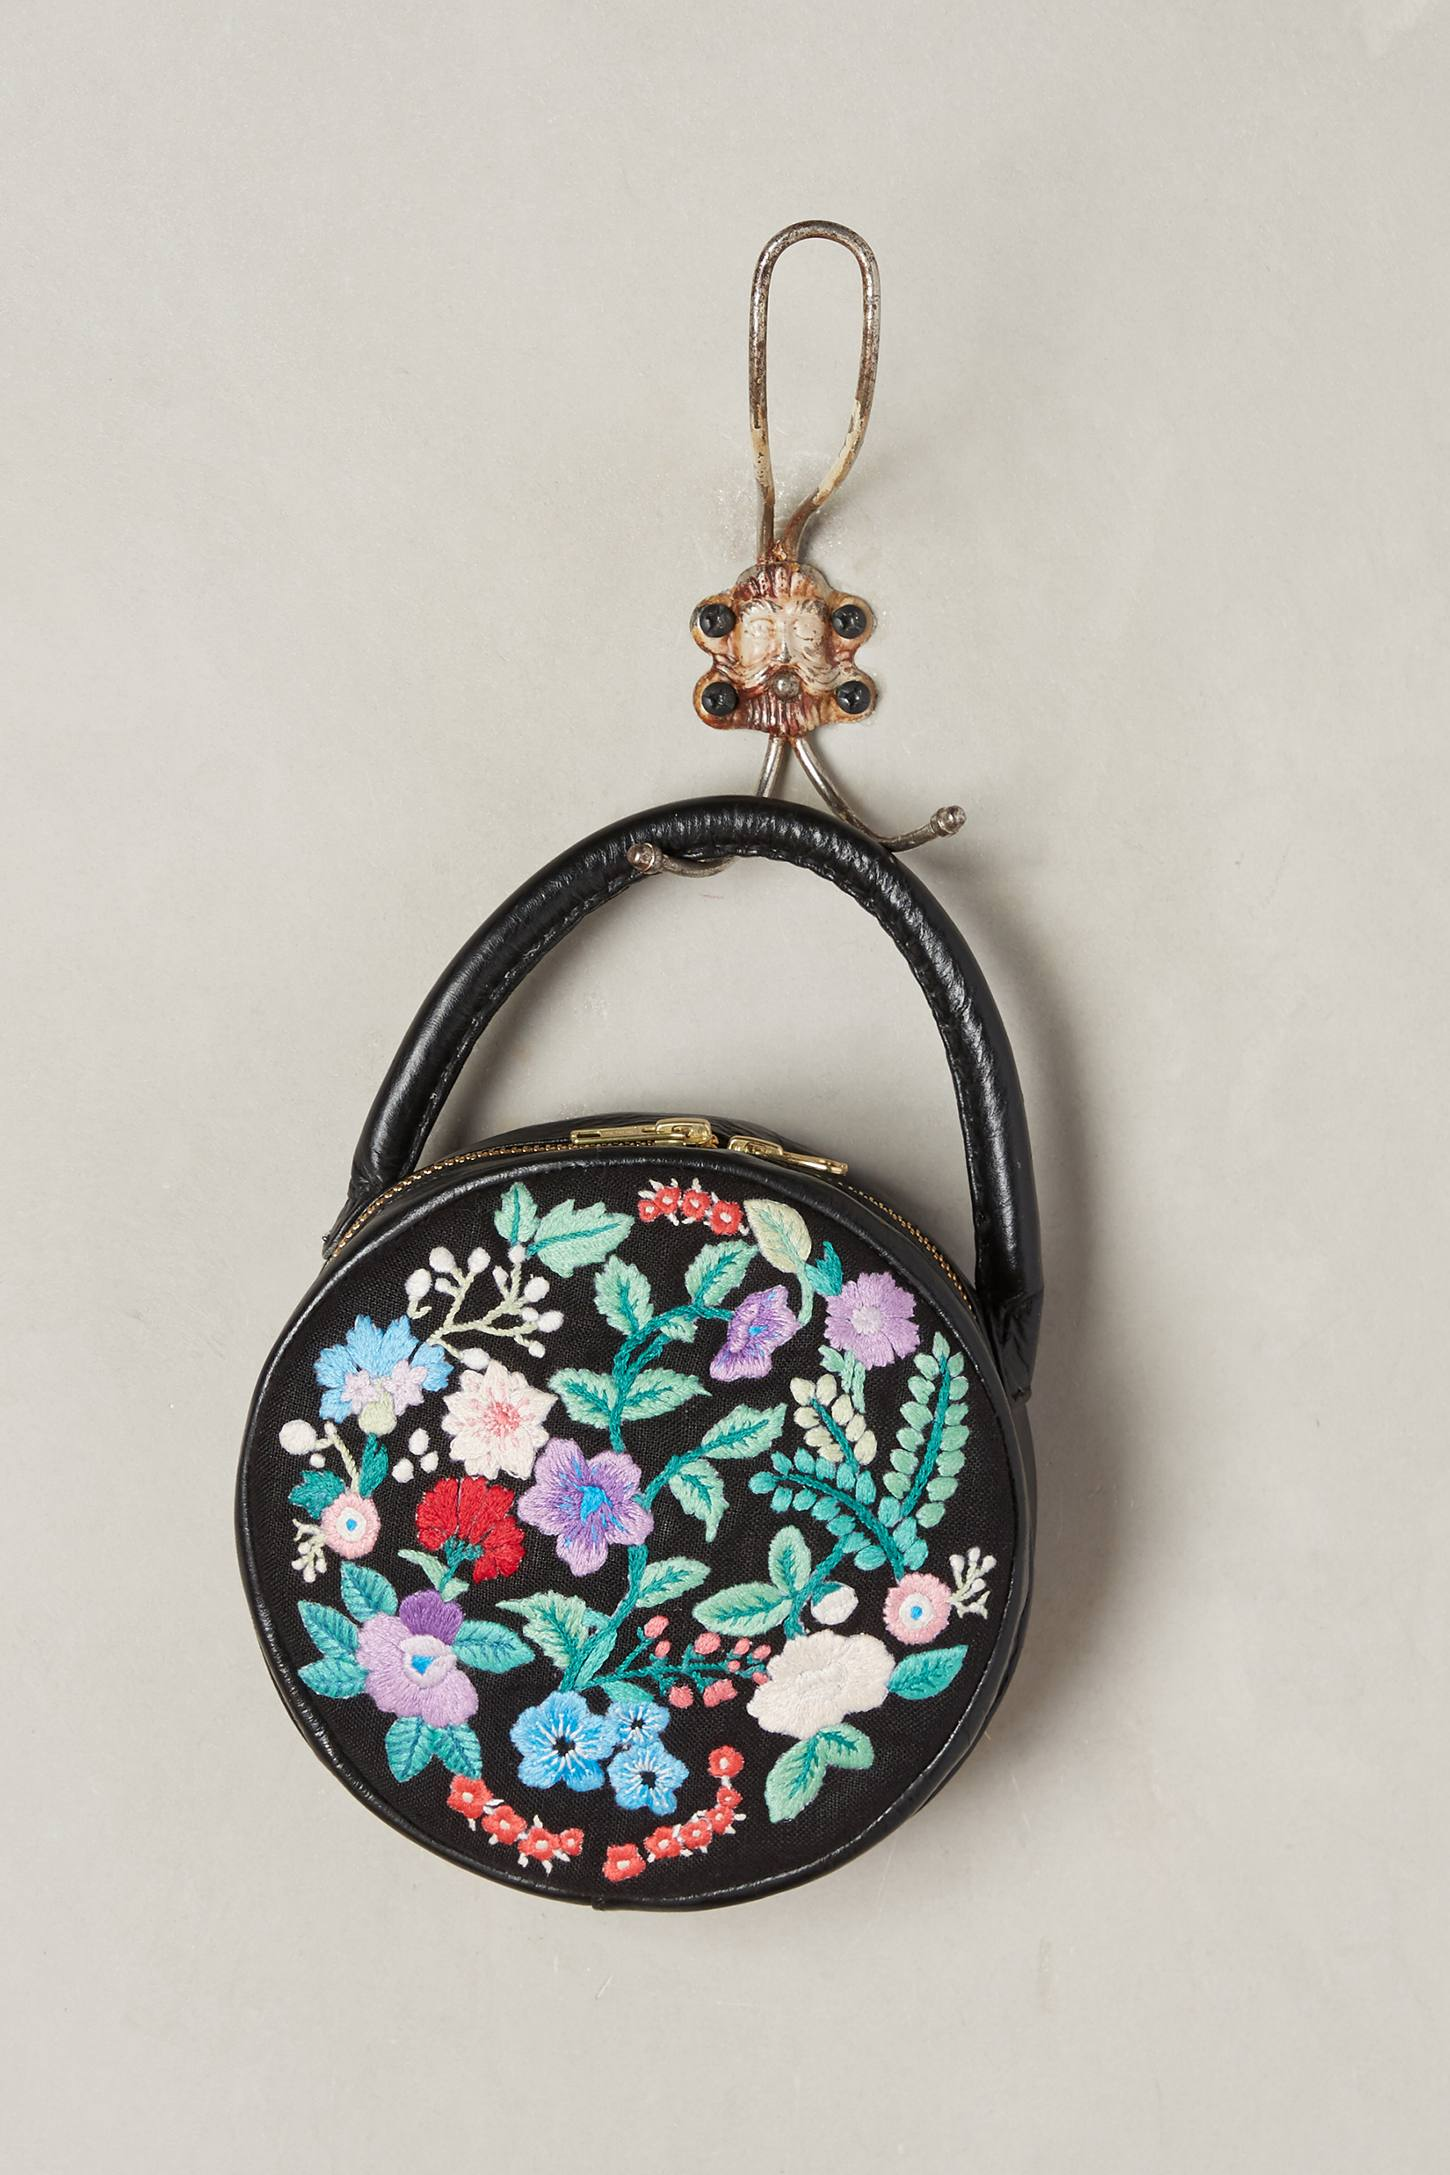 Slide View: 1: Embroidered Circle Bag